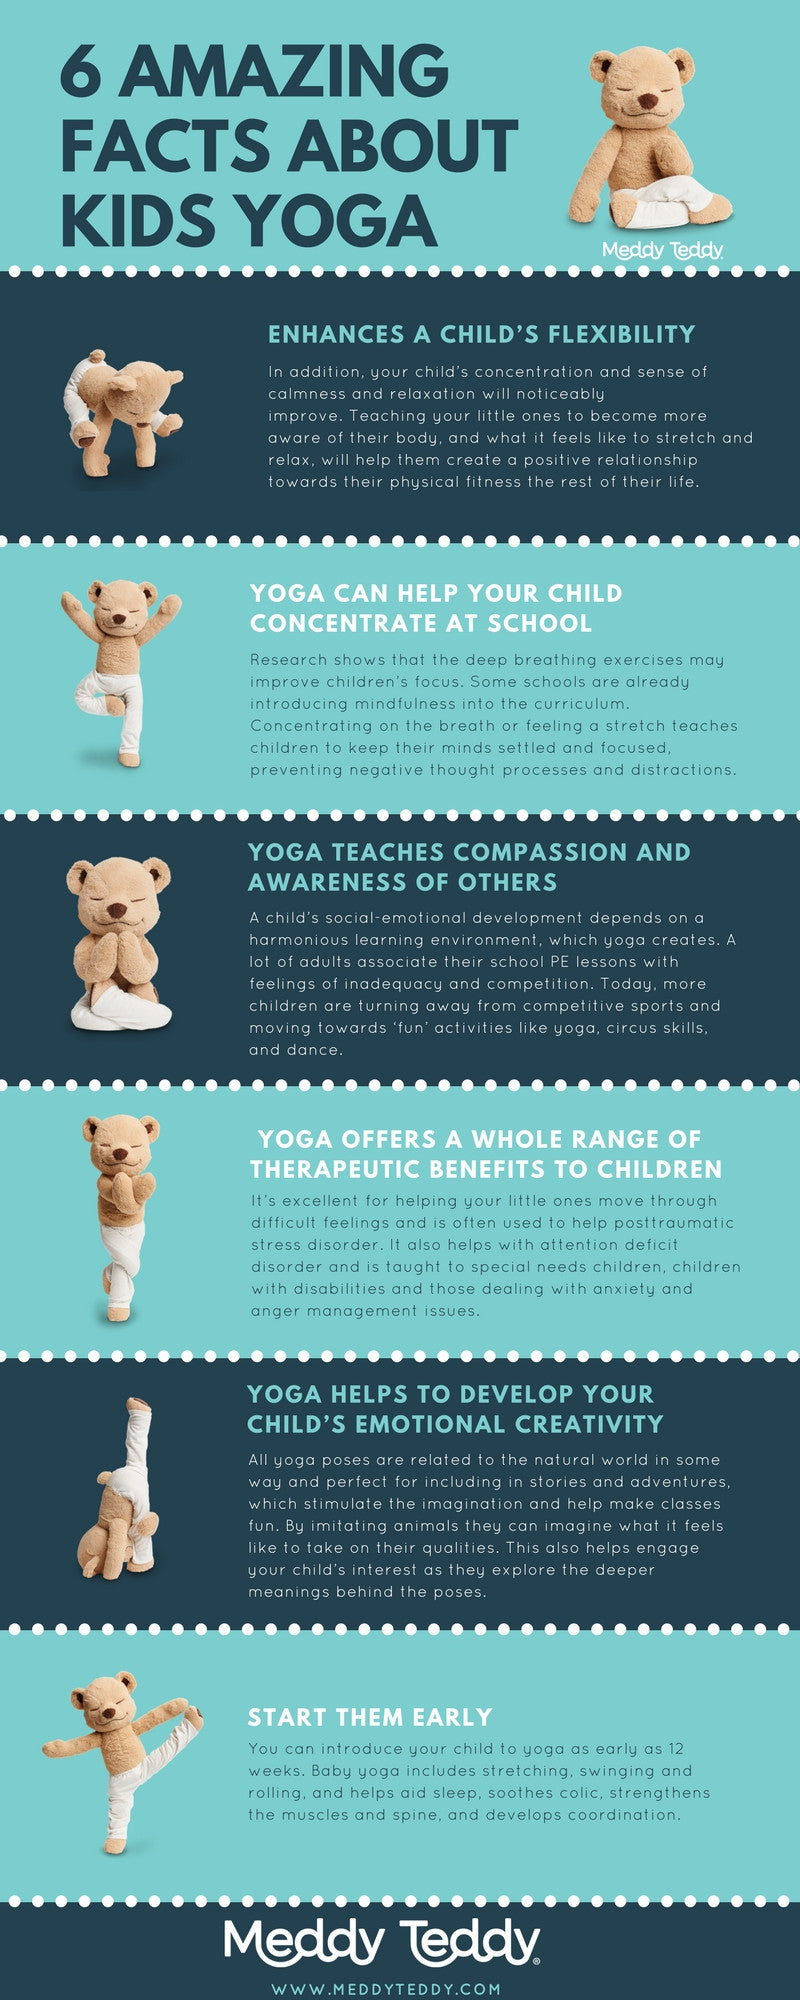 6 Amazing Facts About Kids Yoga